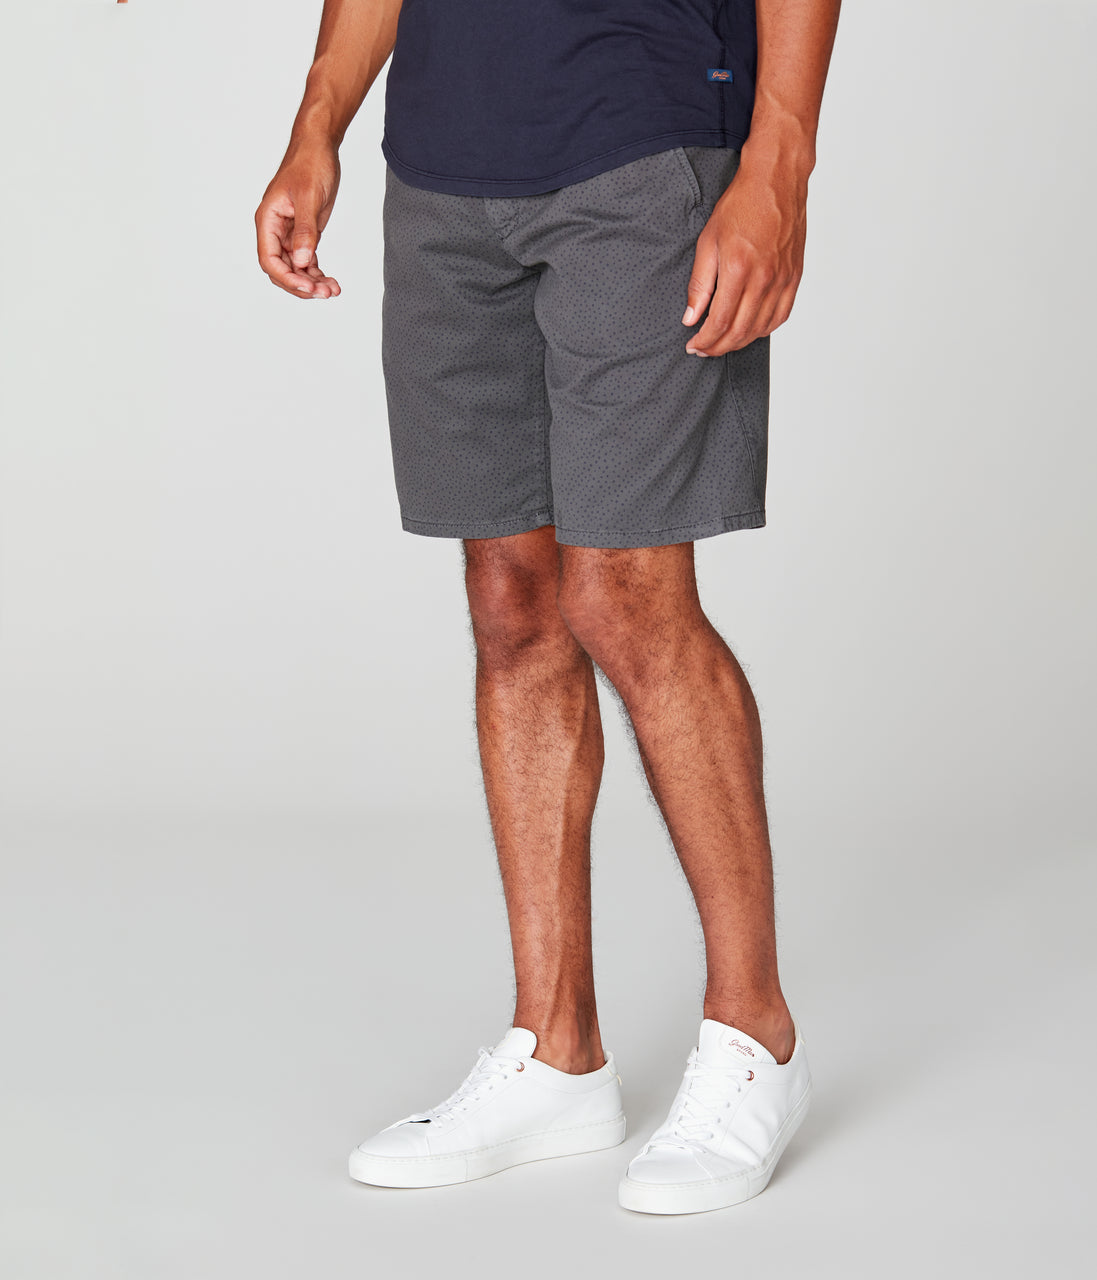 Monaco Stretch Twill Wrap Short - Magnet - Good Man Brand - Monaco Stretch Twill Wrap Short - Magnet